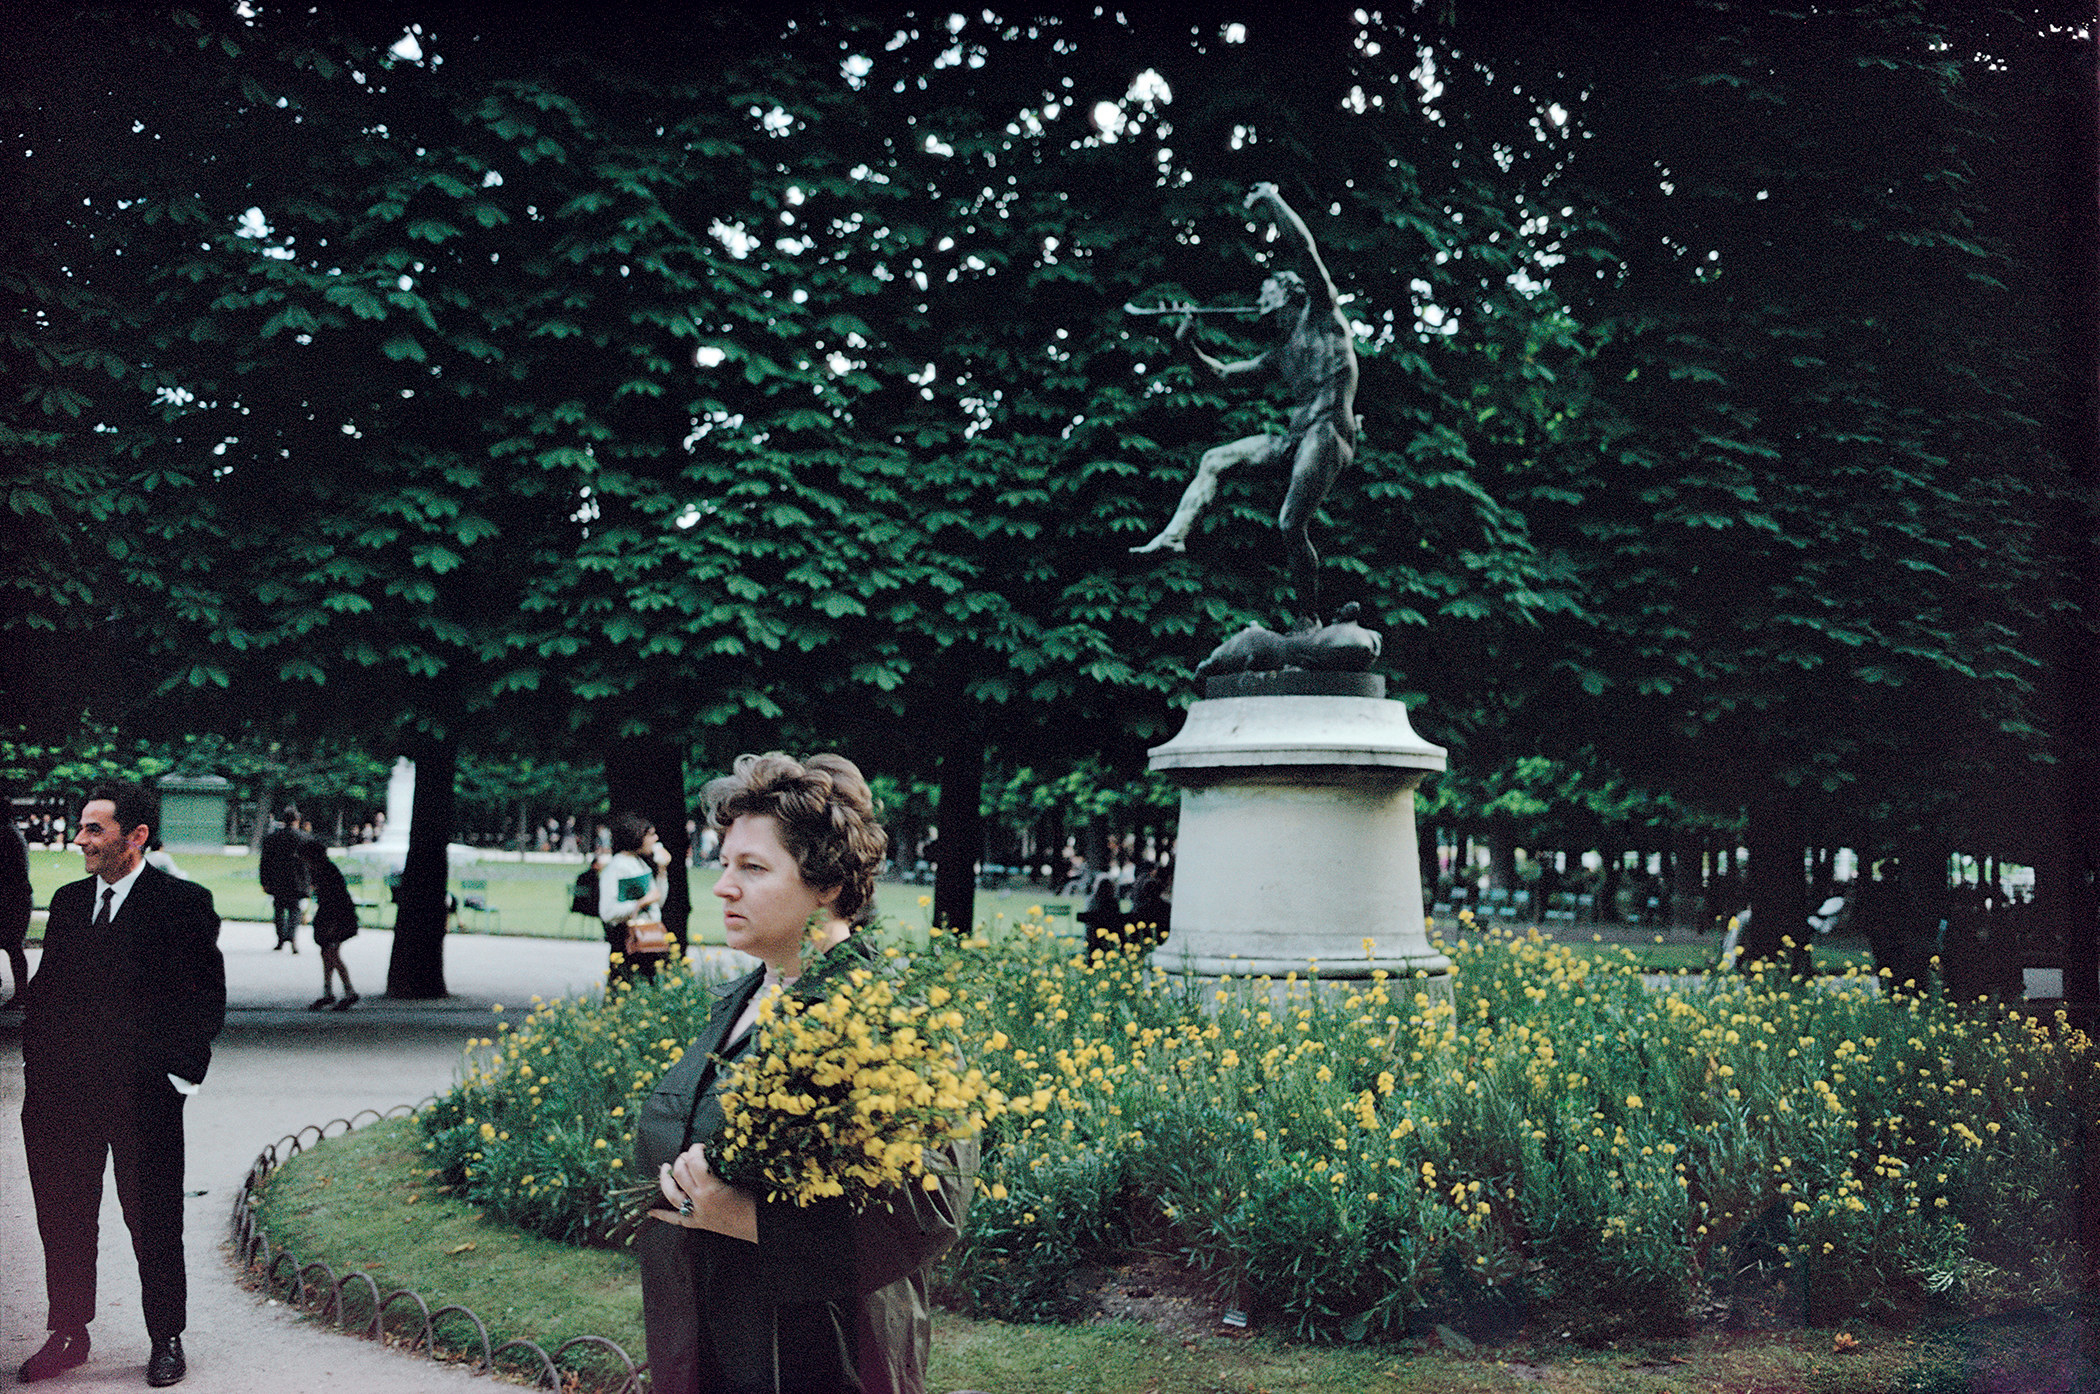 A woman carries flowers through a city park